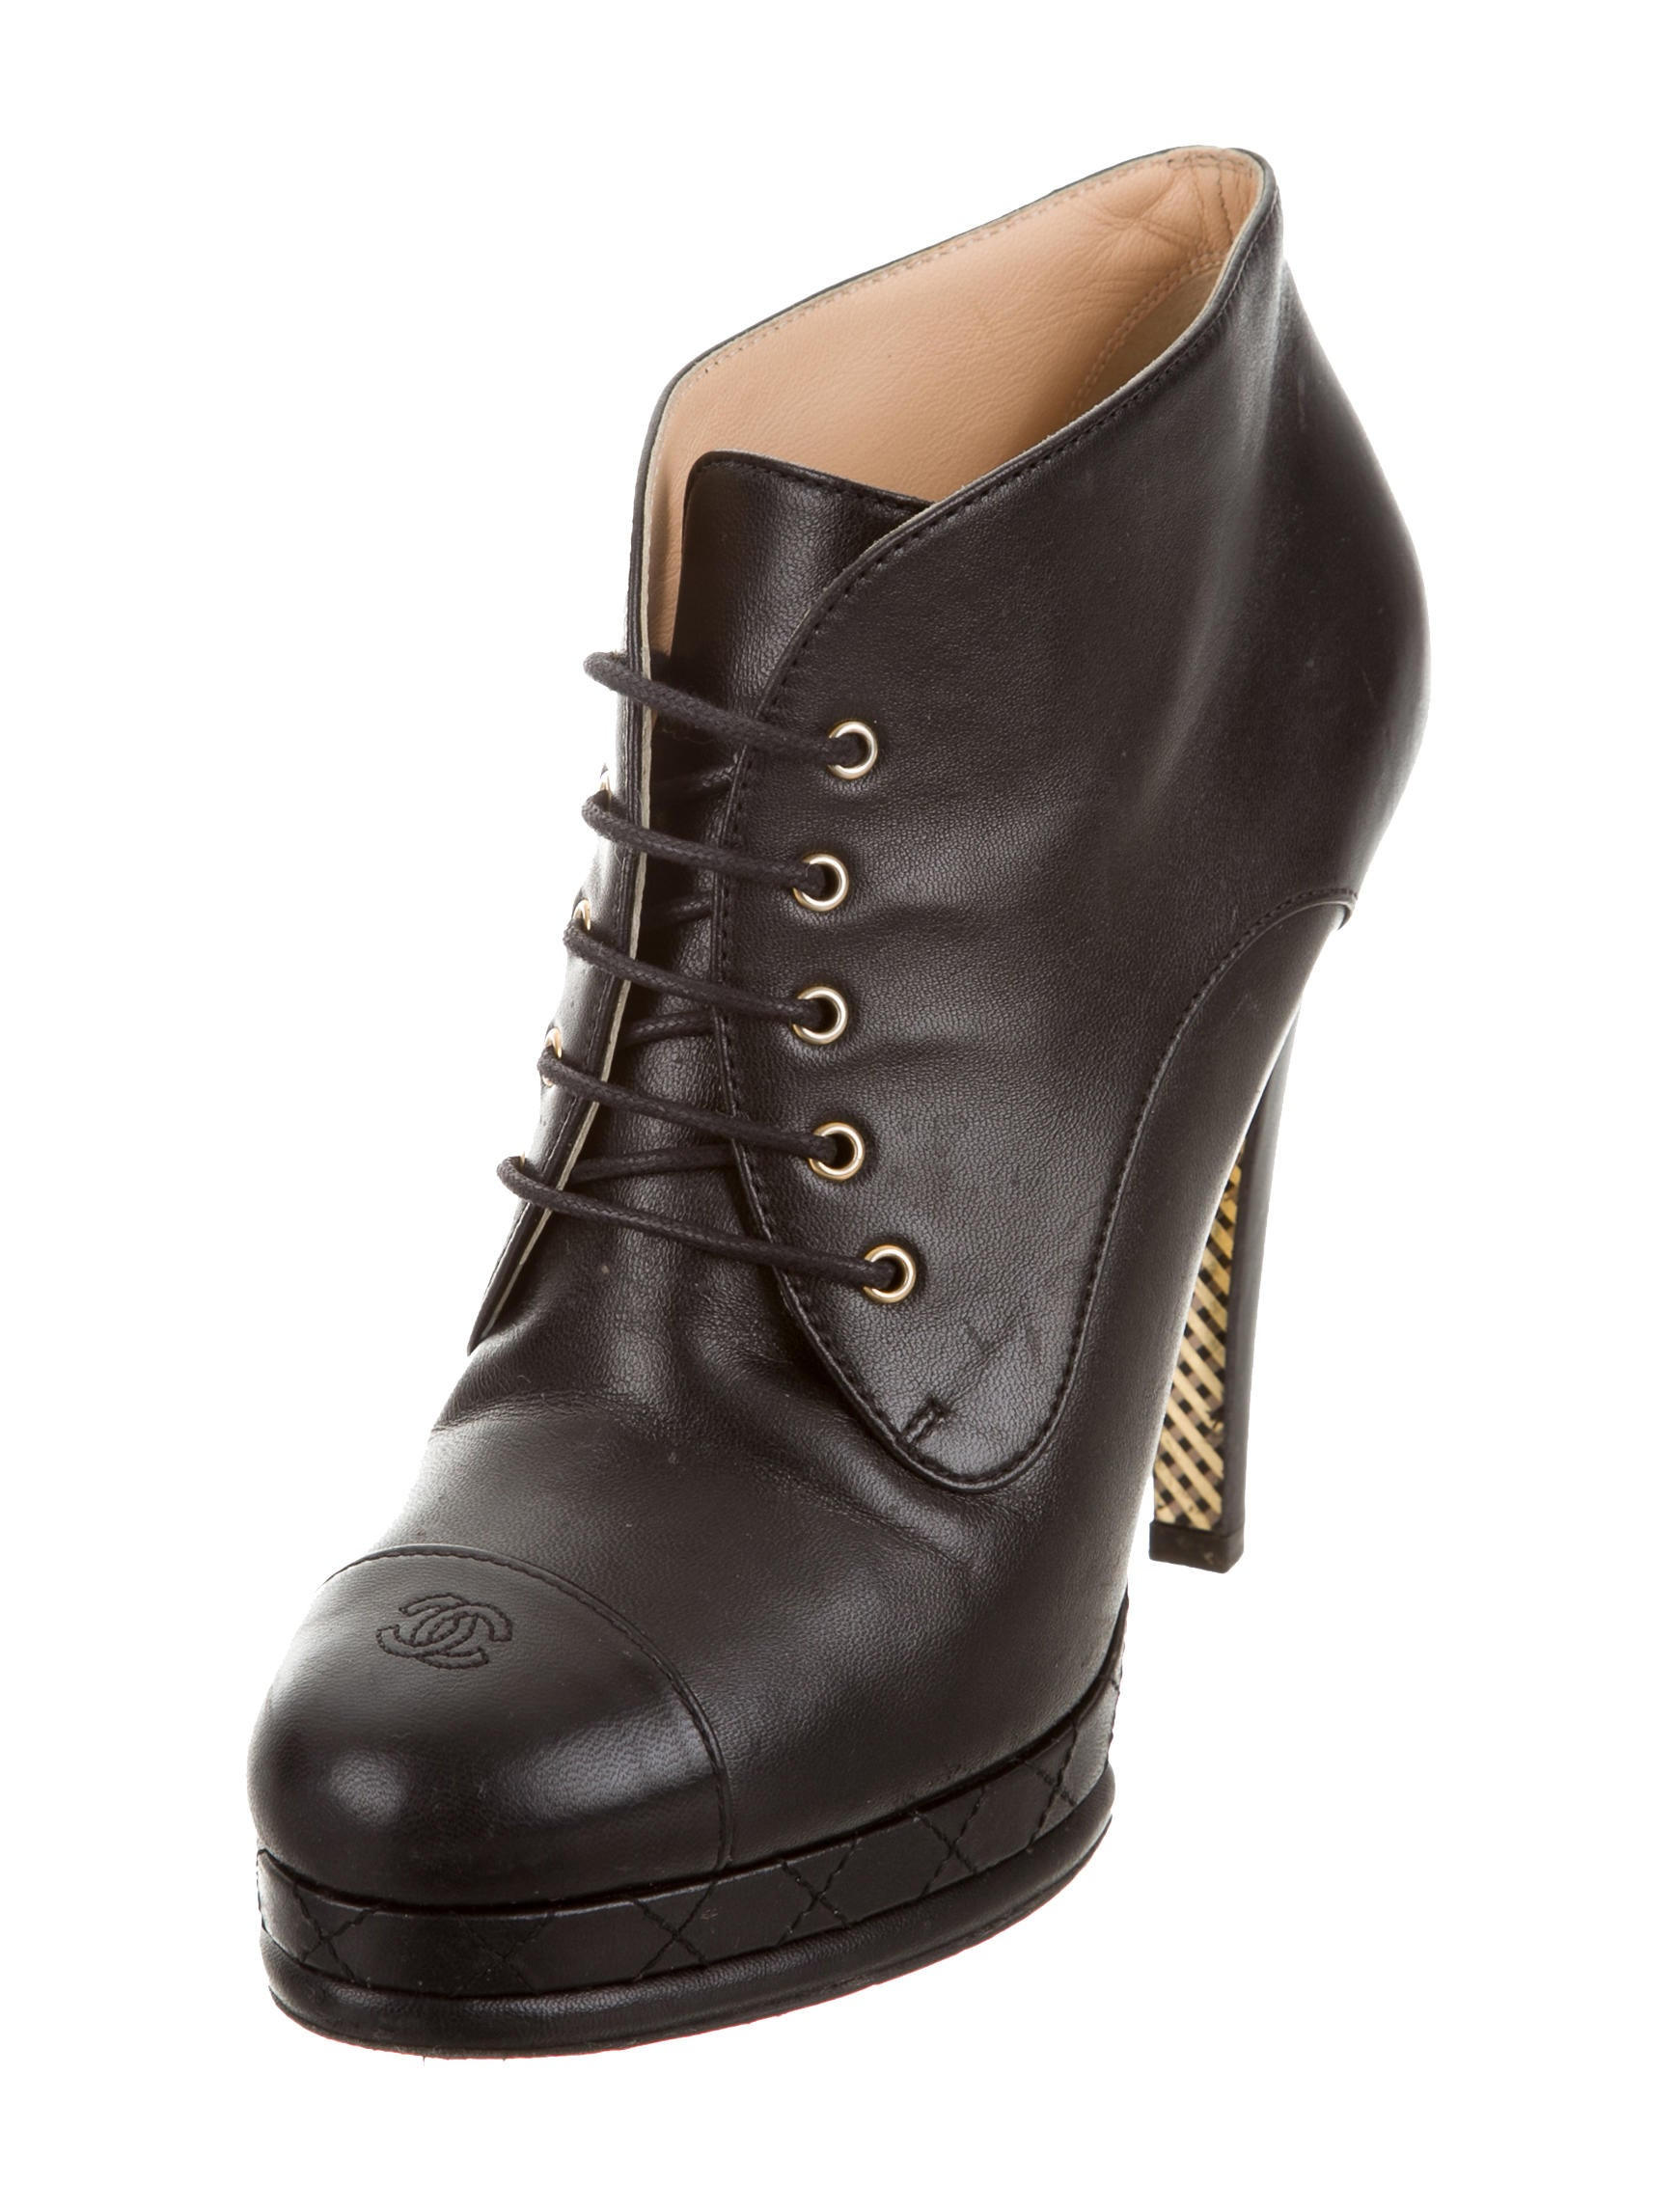 Chanel Lace Up Ankle Boots Shoes Cha163753 The Realreal